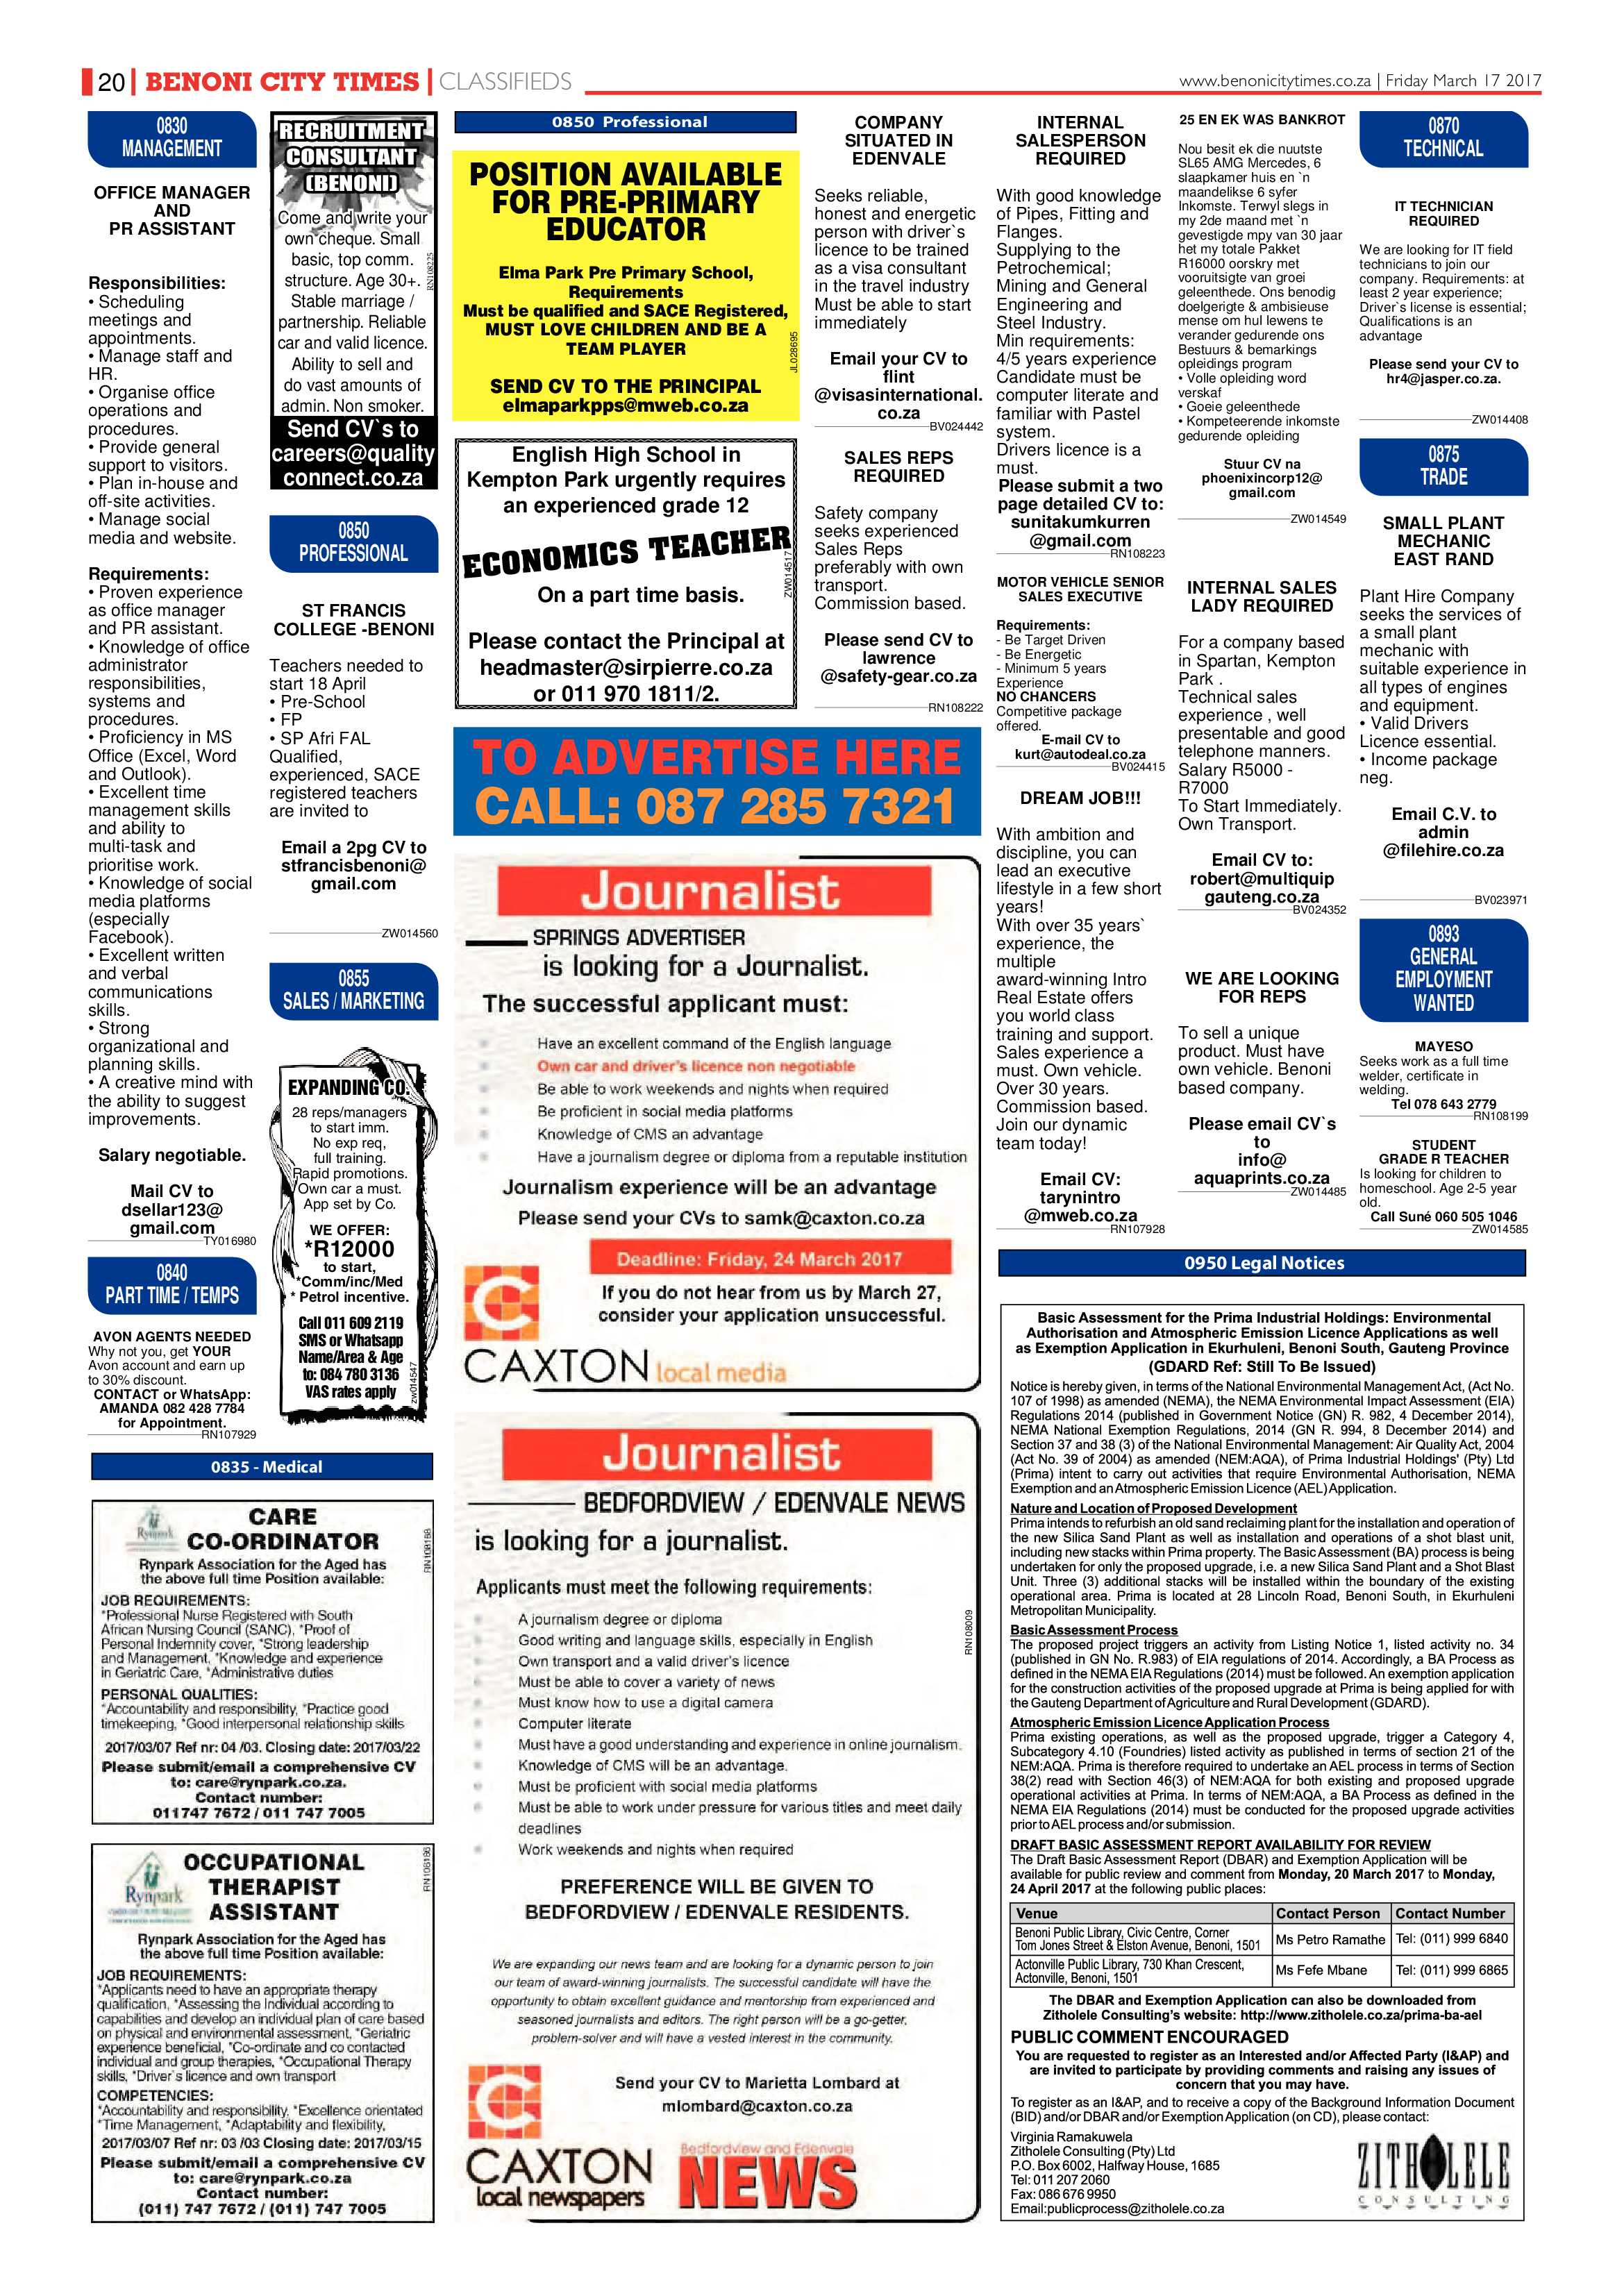 benoni-city-times-16-march-2017-epapers-page-20